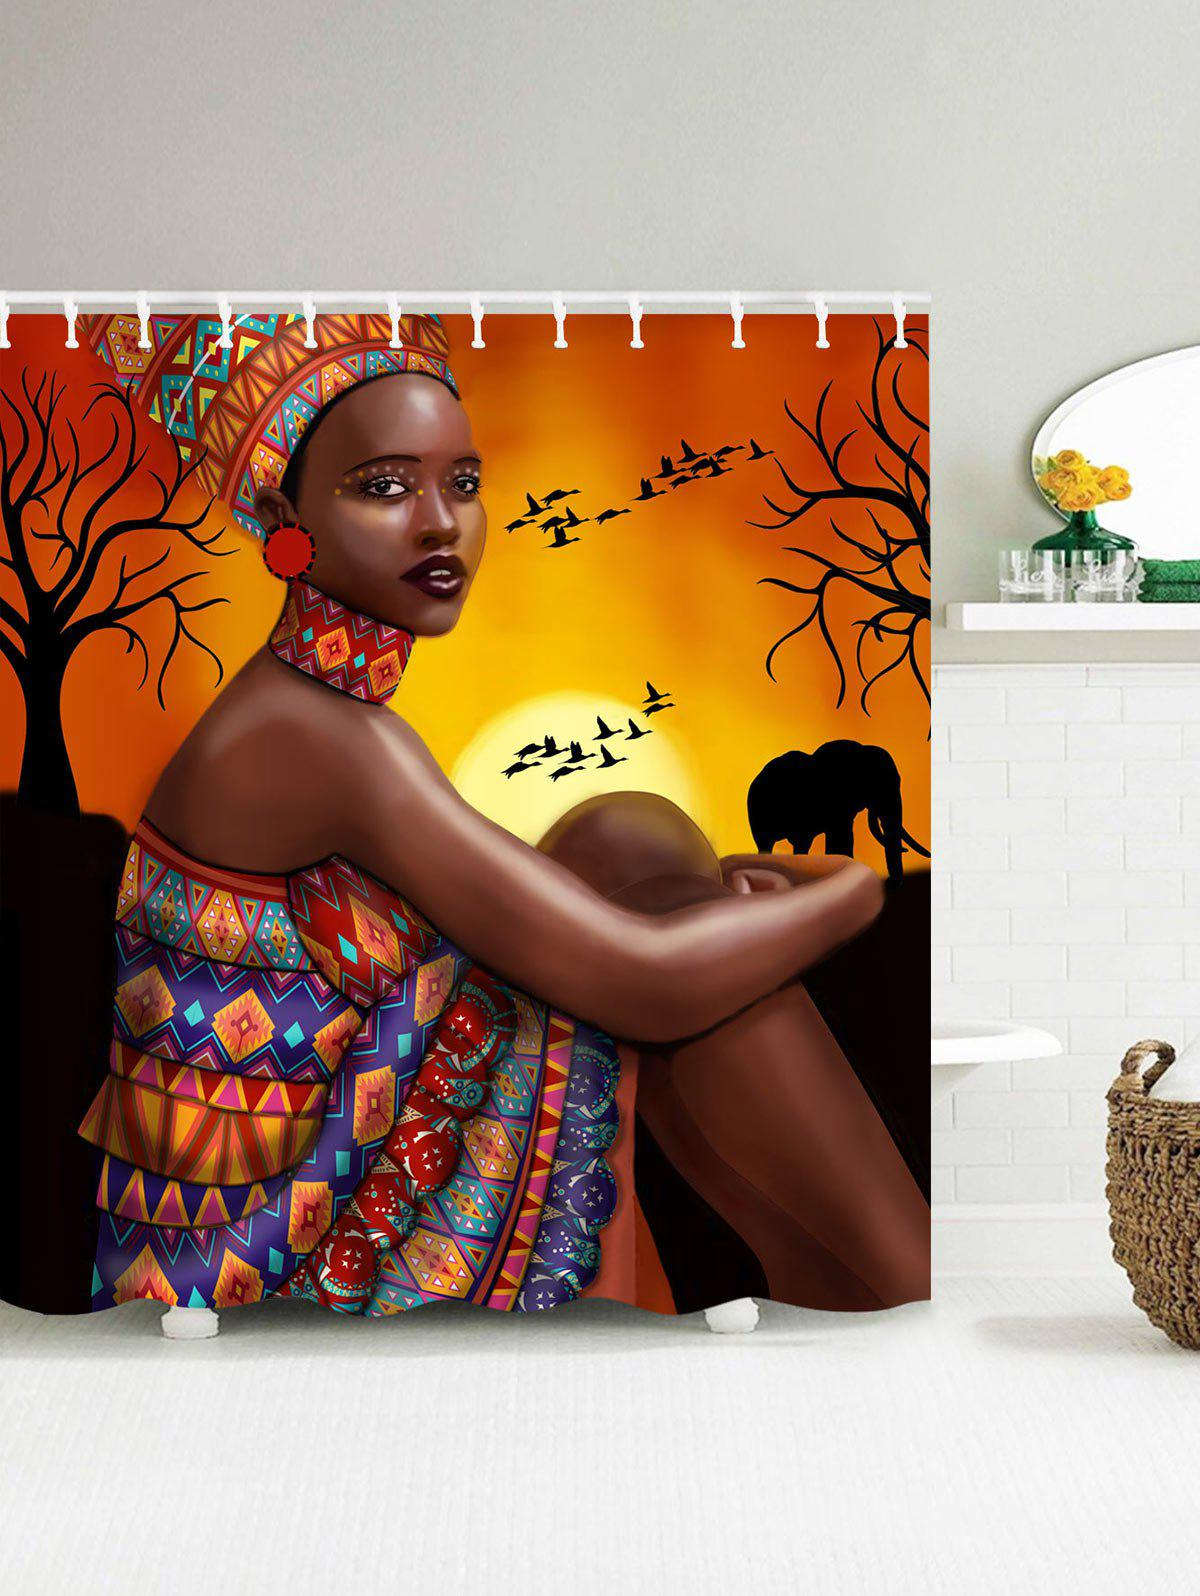 African Tribal Girl Print Mould Proof Shower Curtain pc400 5 pc400lc 5 pc300lc 5 pc300 5 excavator hydraulic pump solenoid valve 708 23 18272 for komatsu